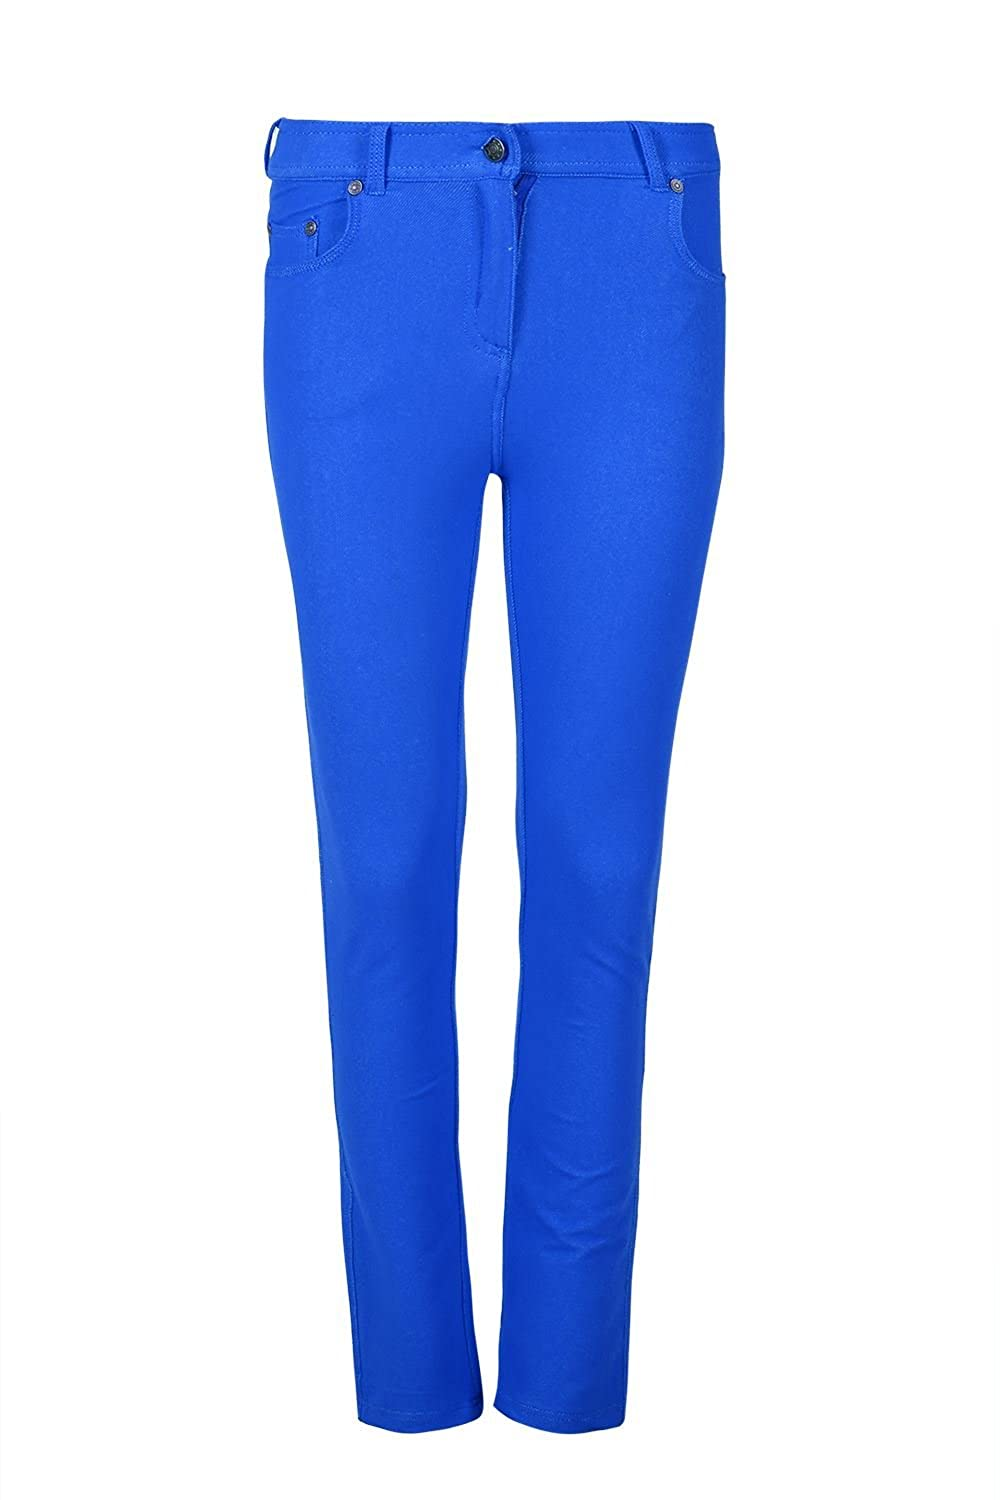 Be Jealous Damen Skinny Hüfthohe Jeans Stretch leggings